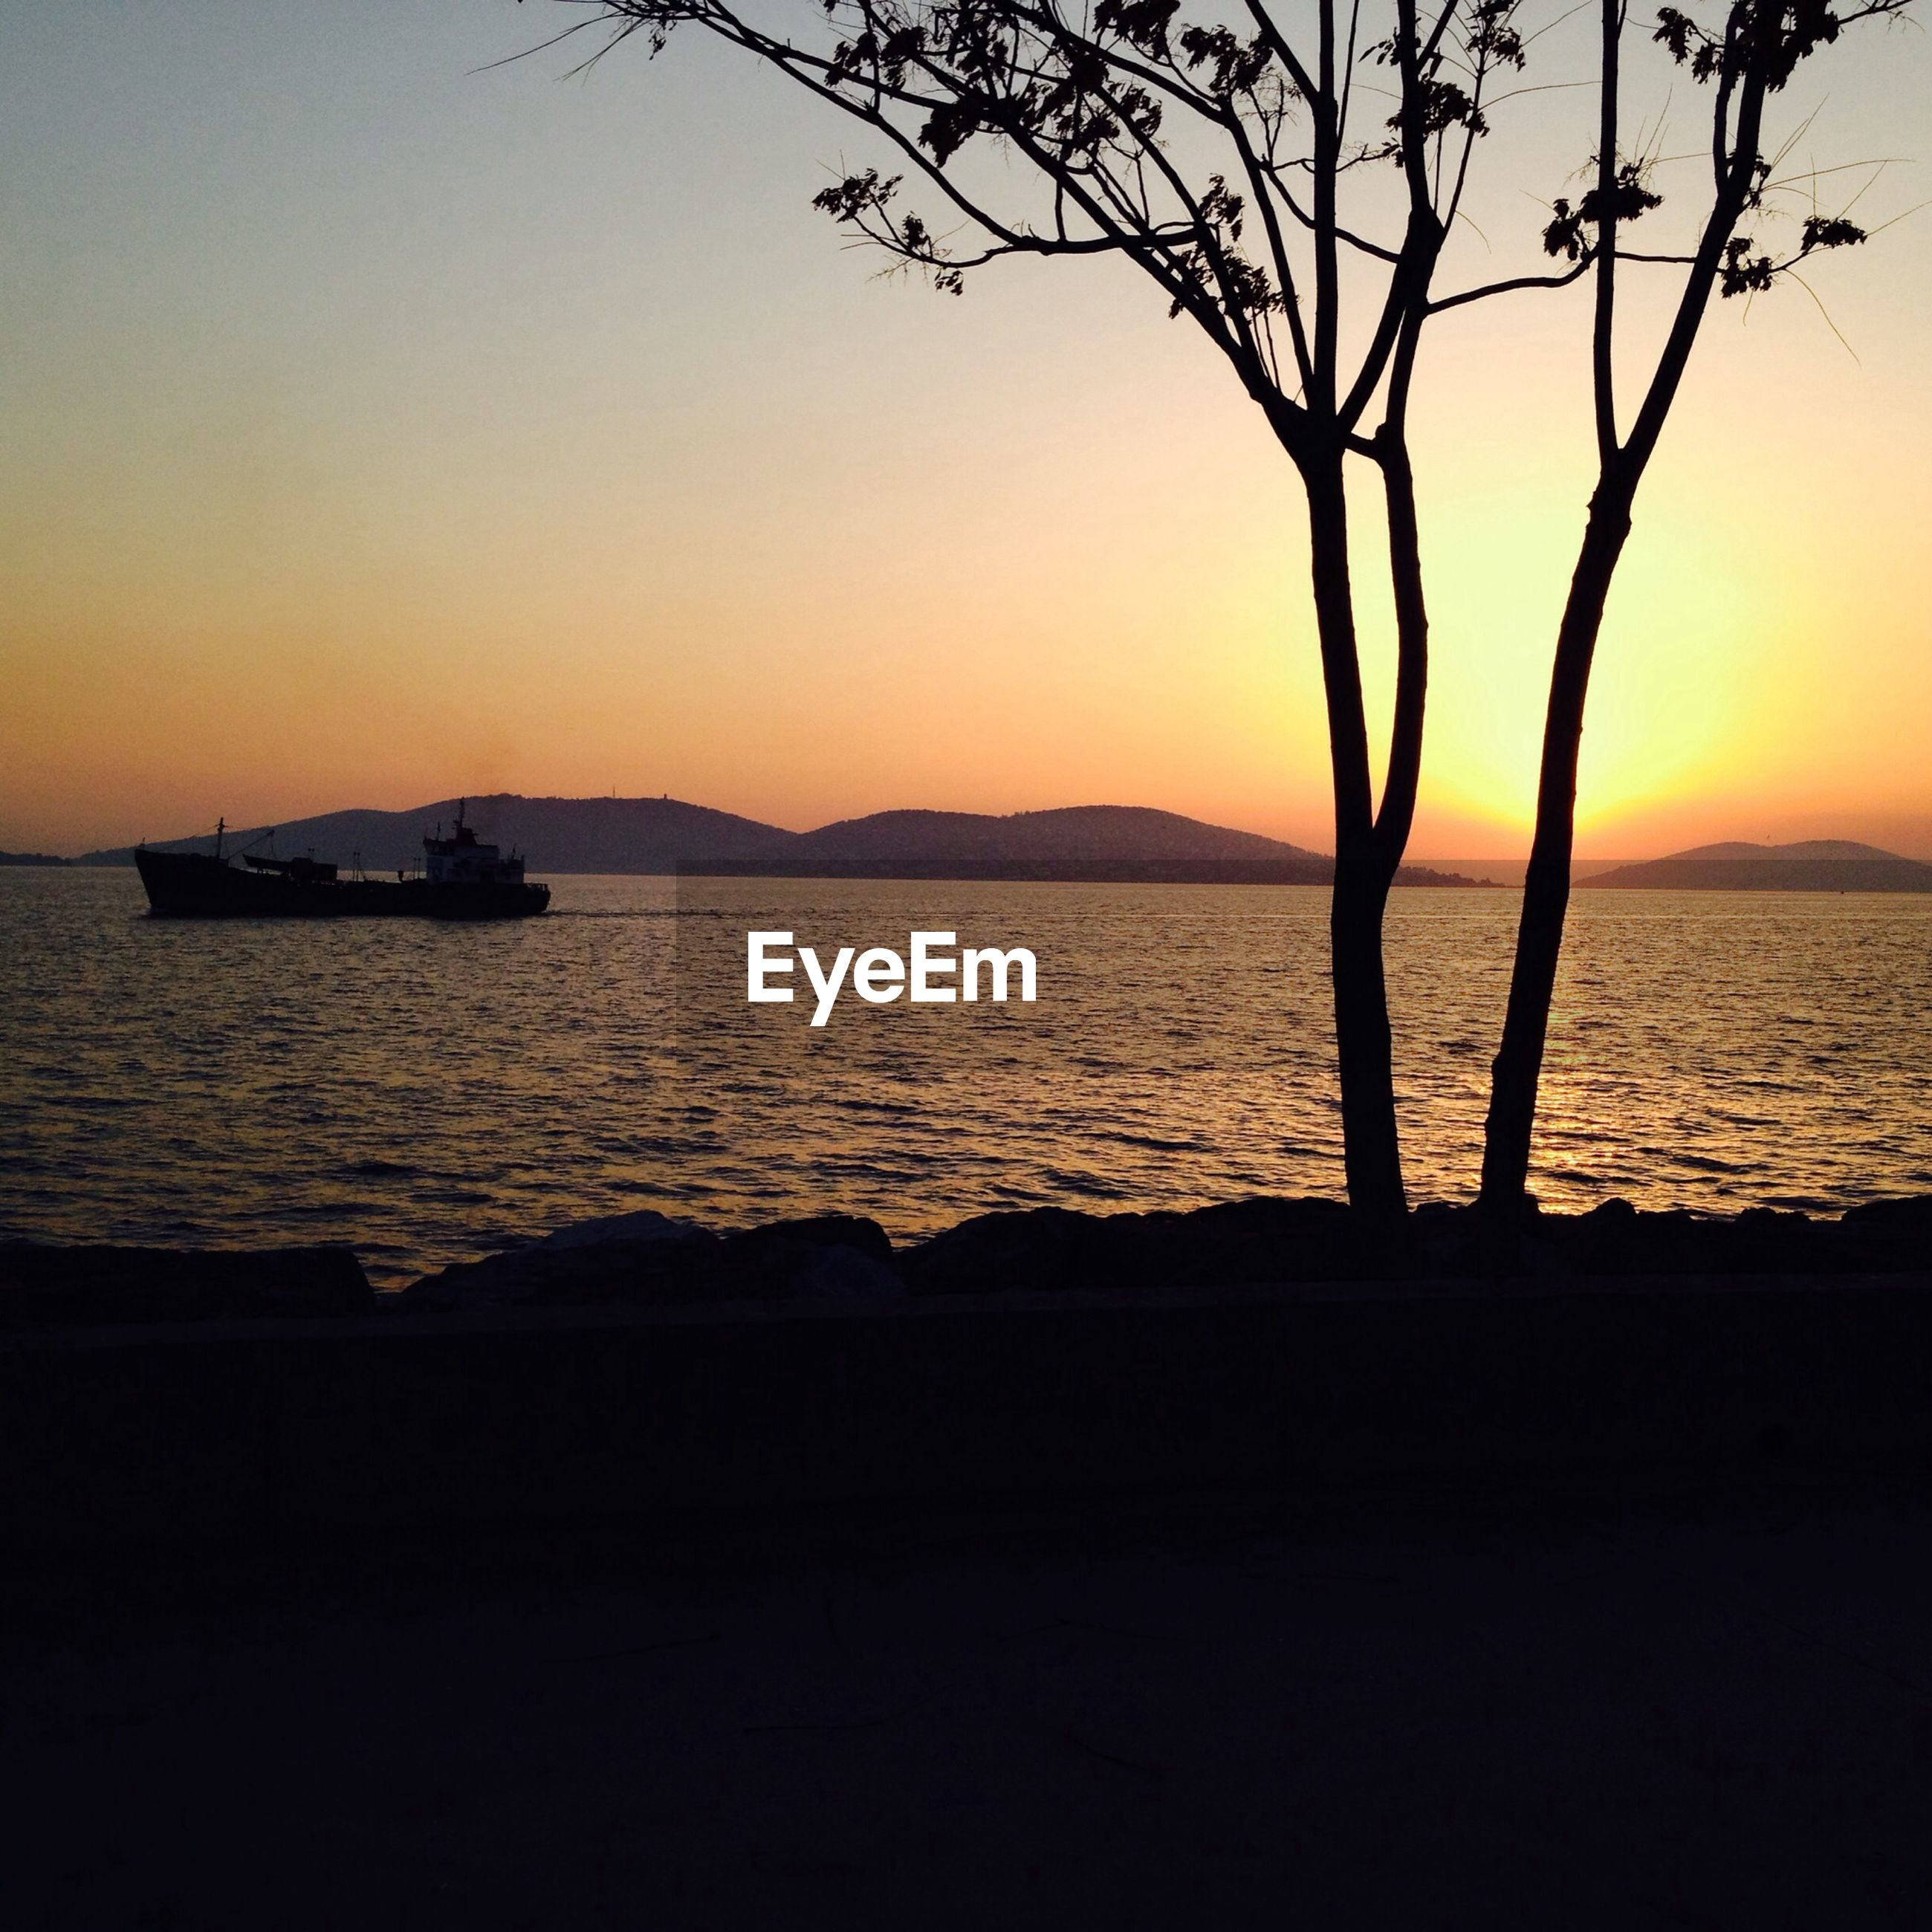 sunset, orange color, silhouette, water, sea, scenics, tranquility, tranquil scene, beauty in nature, clear sky, sun, nature, idyllic, horizon over water, sky, branch, tree, copy space, bare tree, outdoors